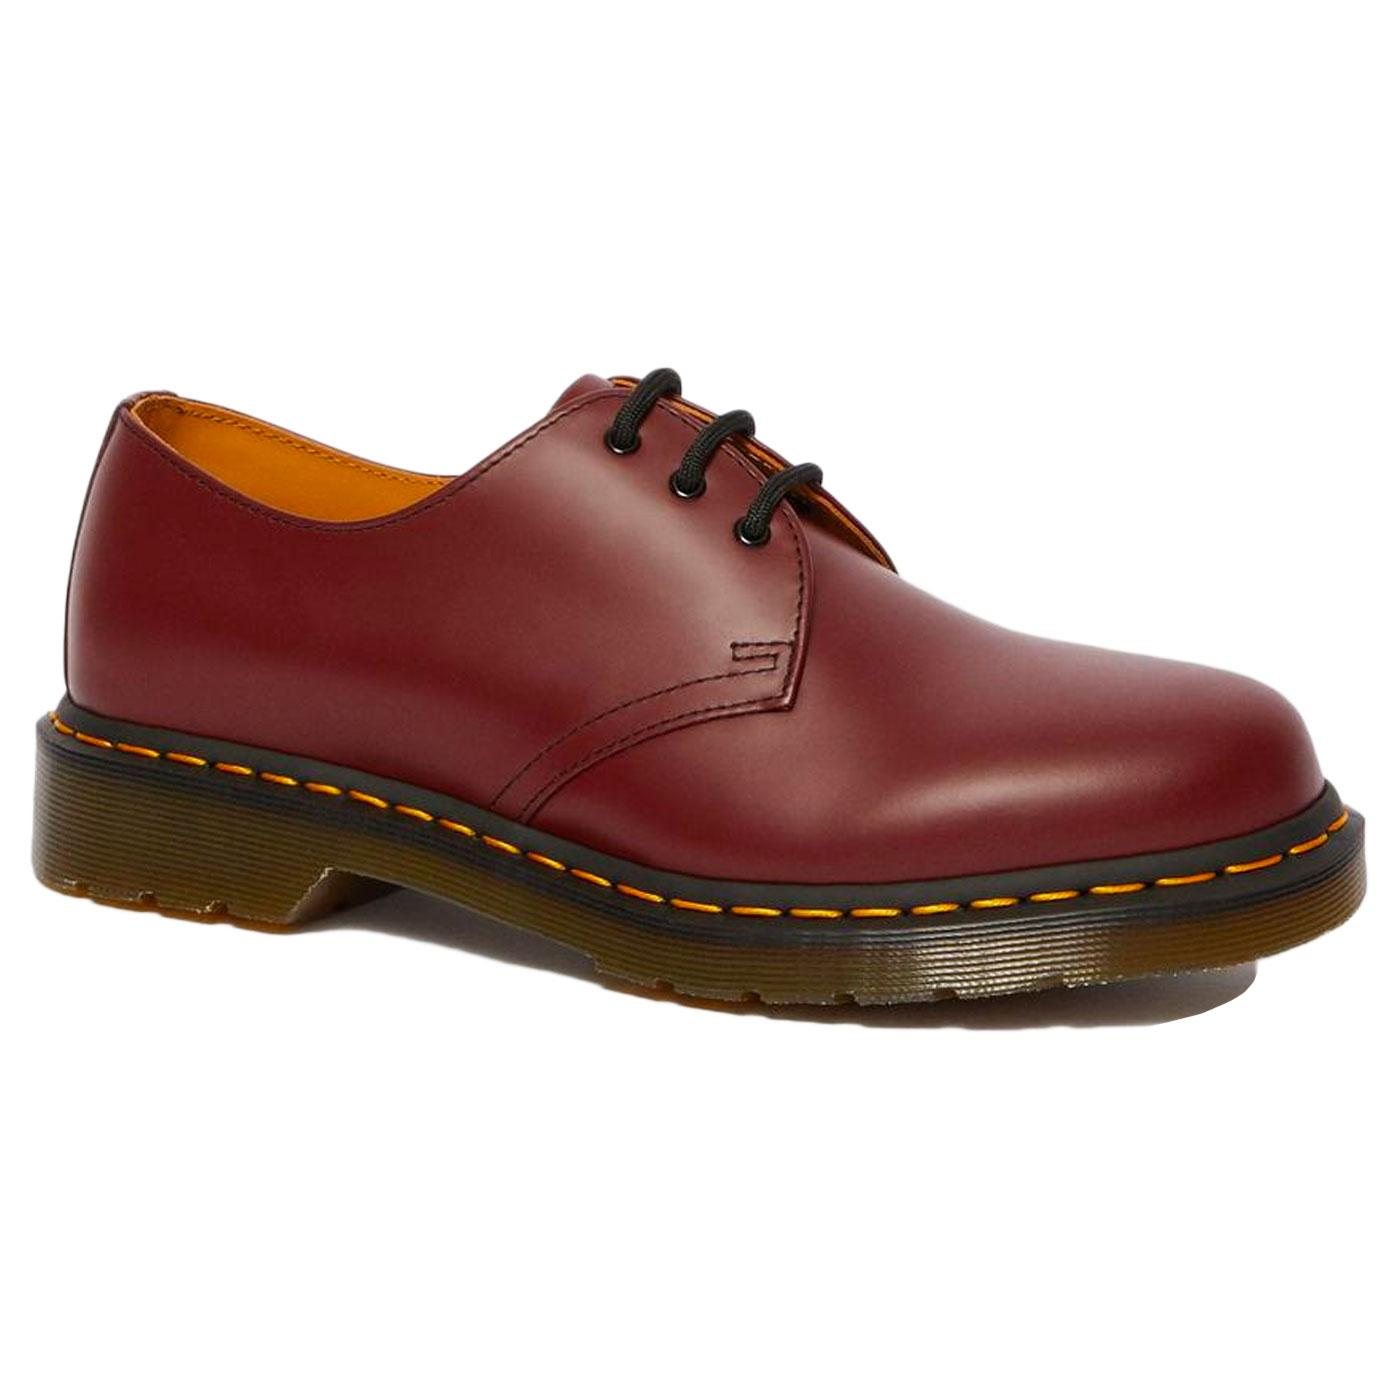 1461 DR MARTENS Women's Smooth Mod Shoes CHERRY